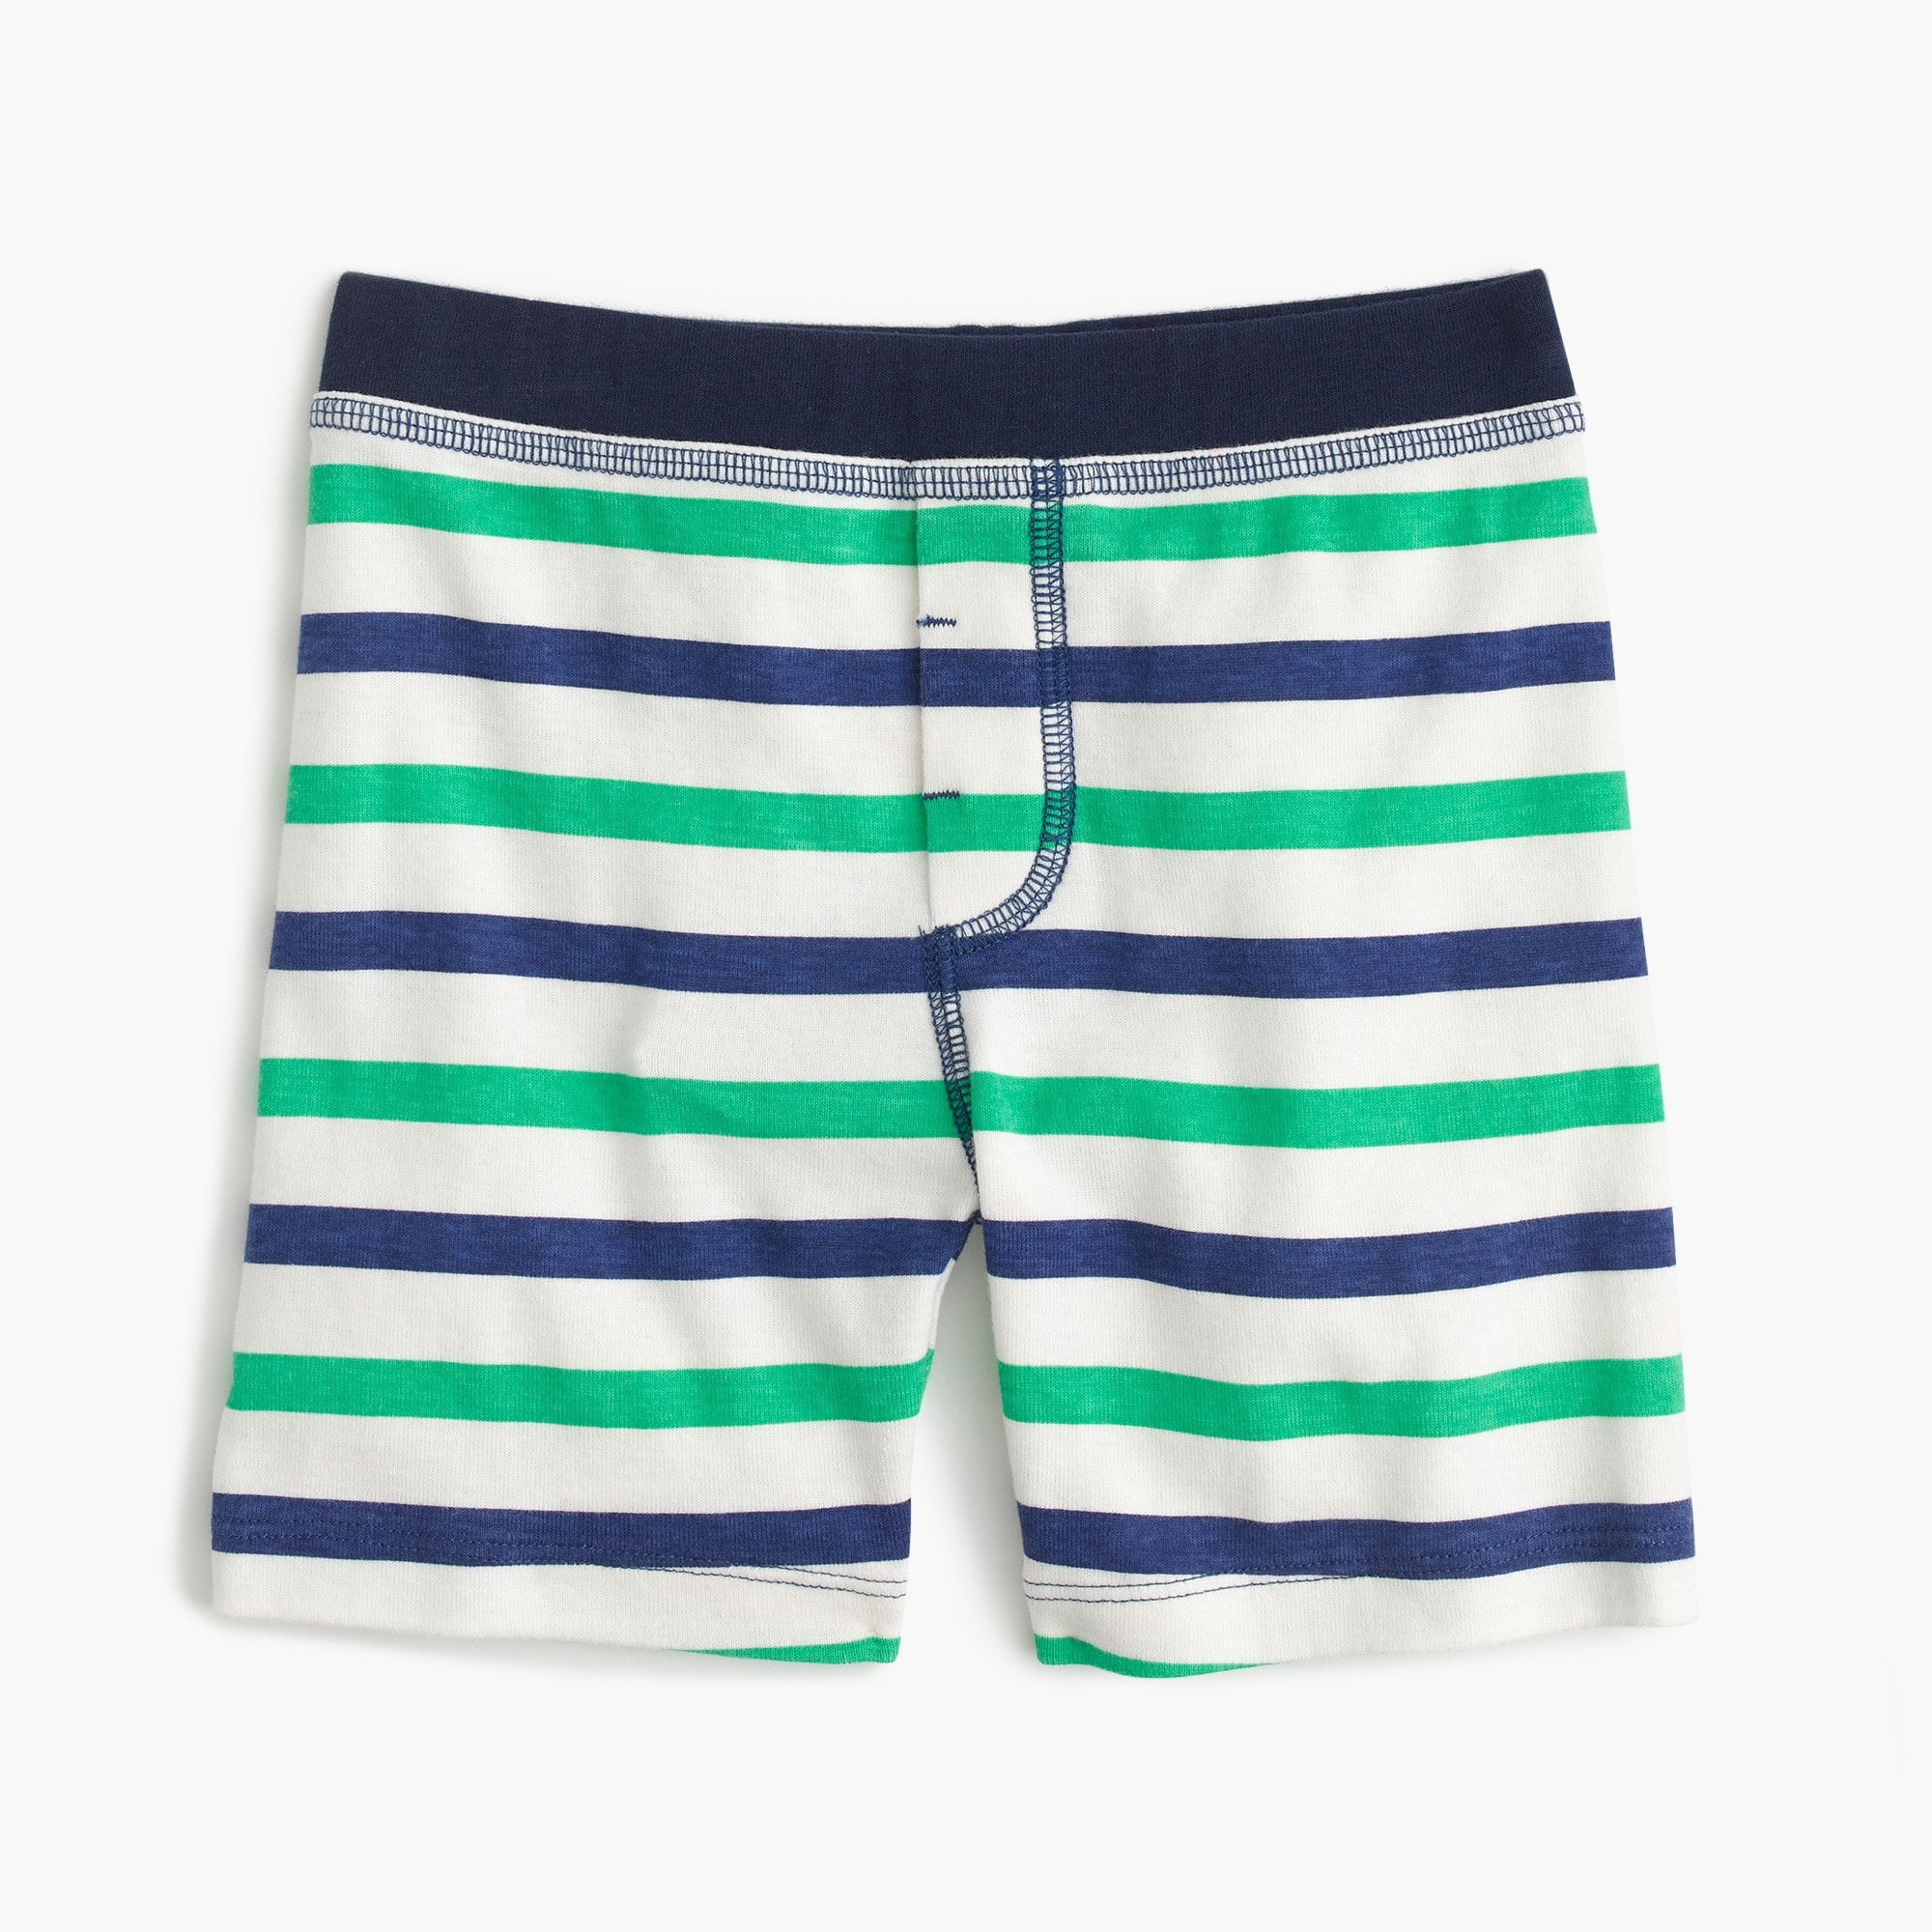 Kids' short pajama set in cabana stripes